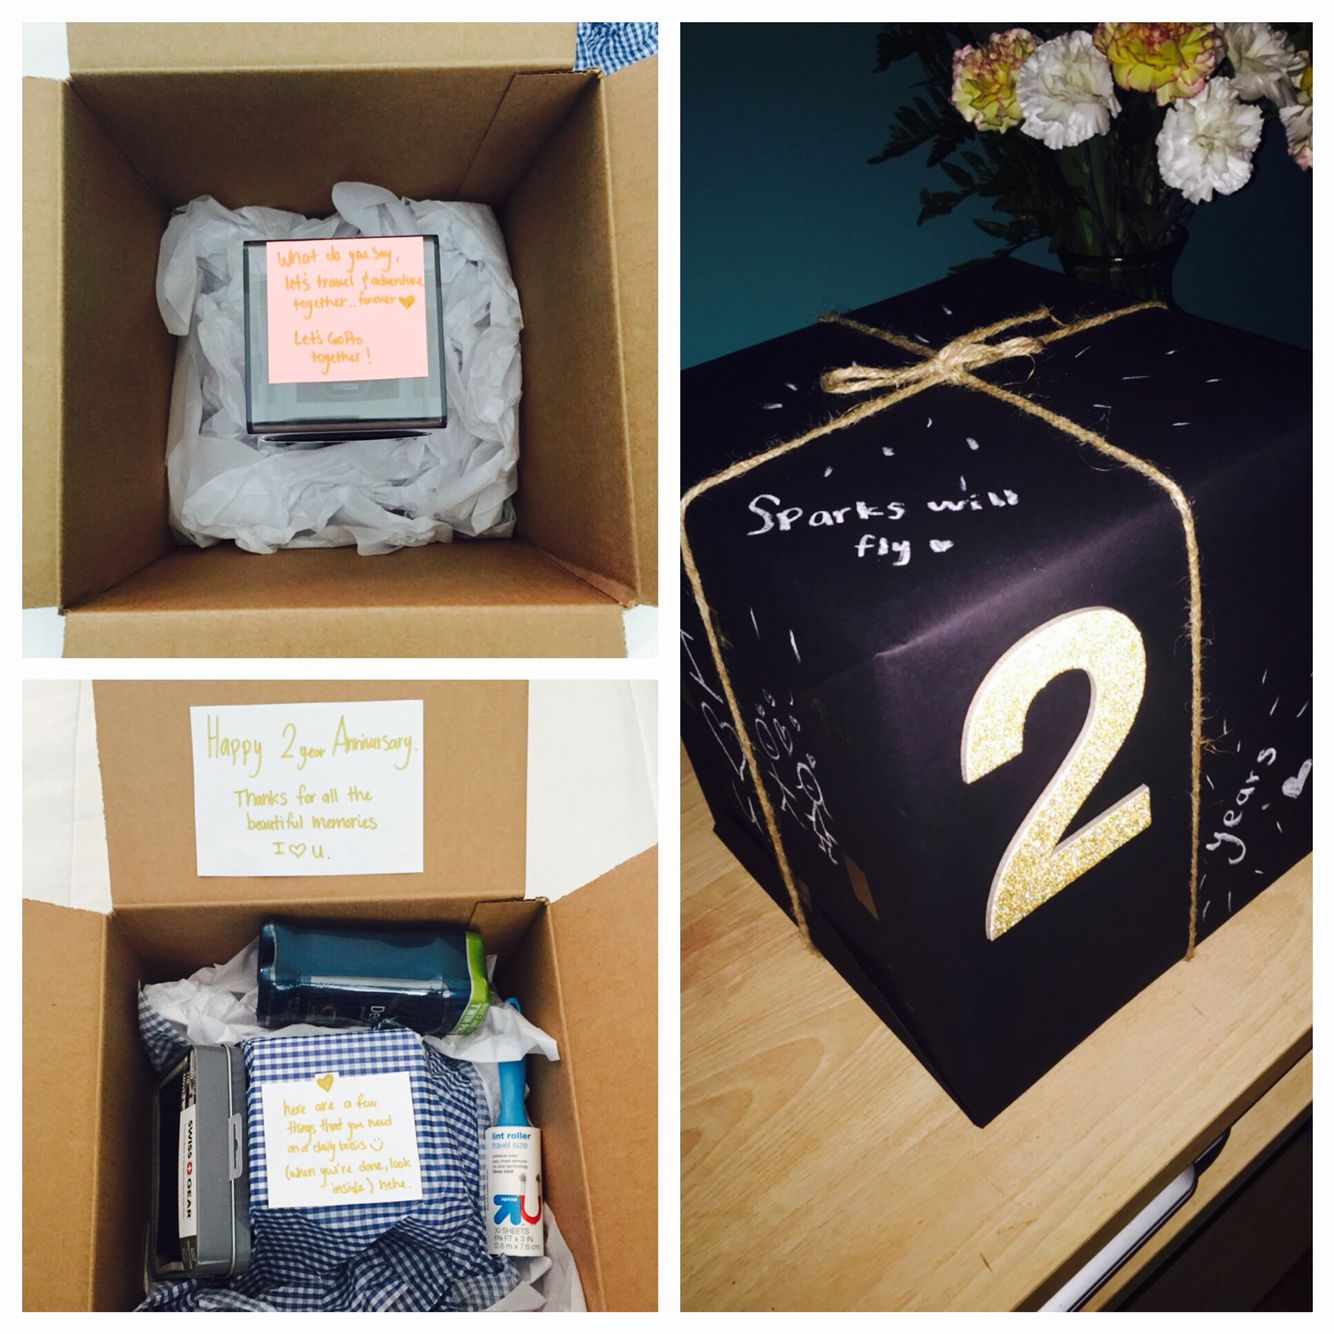 2 year diy anniversary gift for him go pro style he